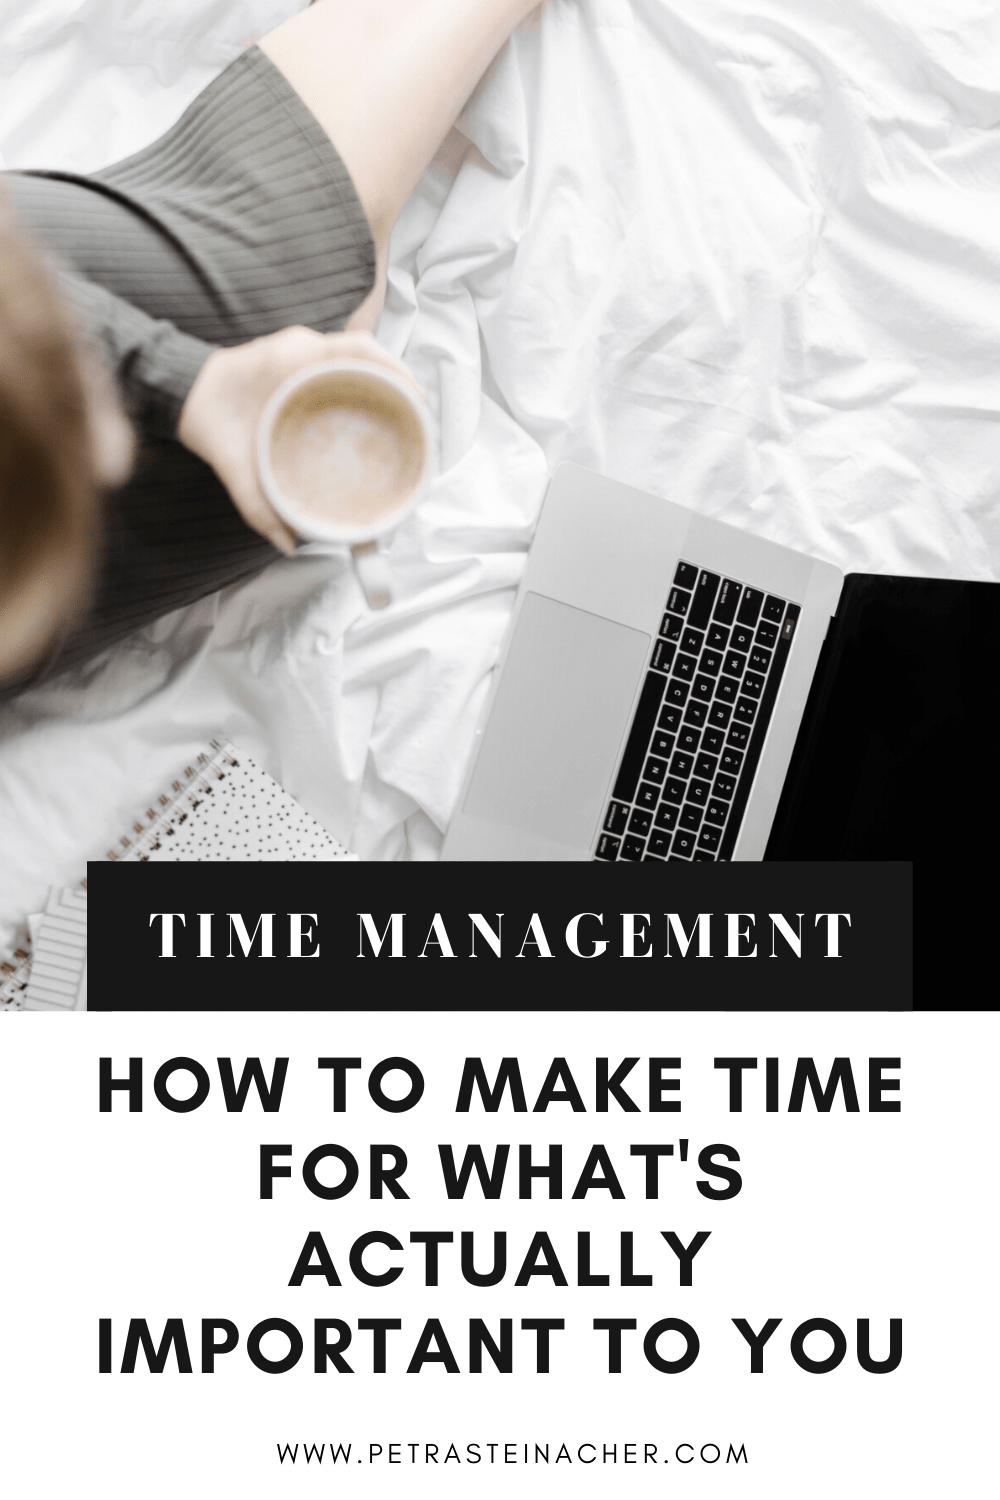 How to make time for what's actually important for you